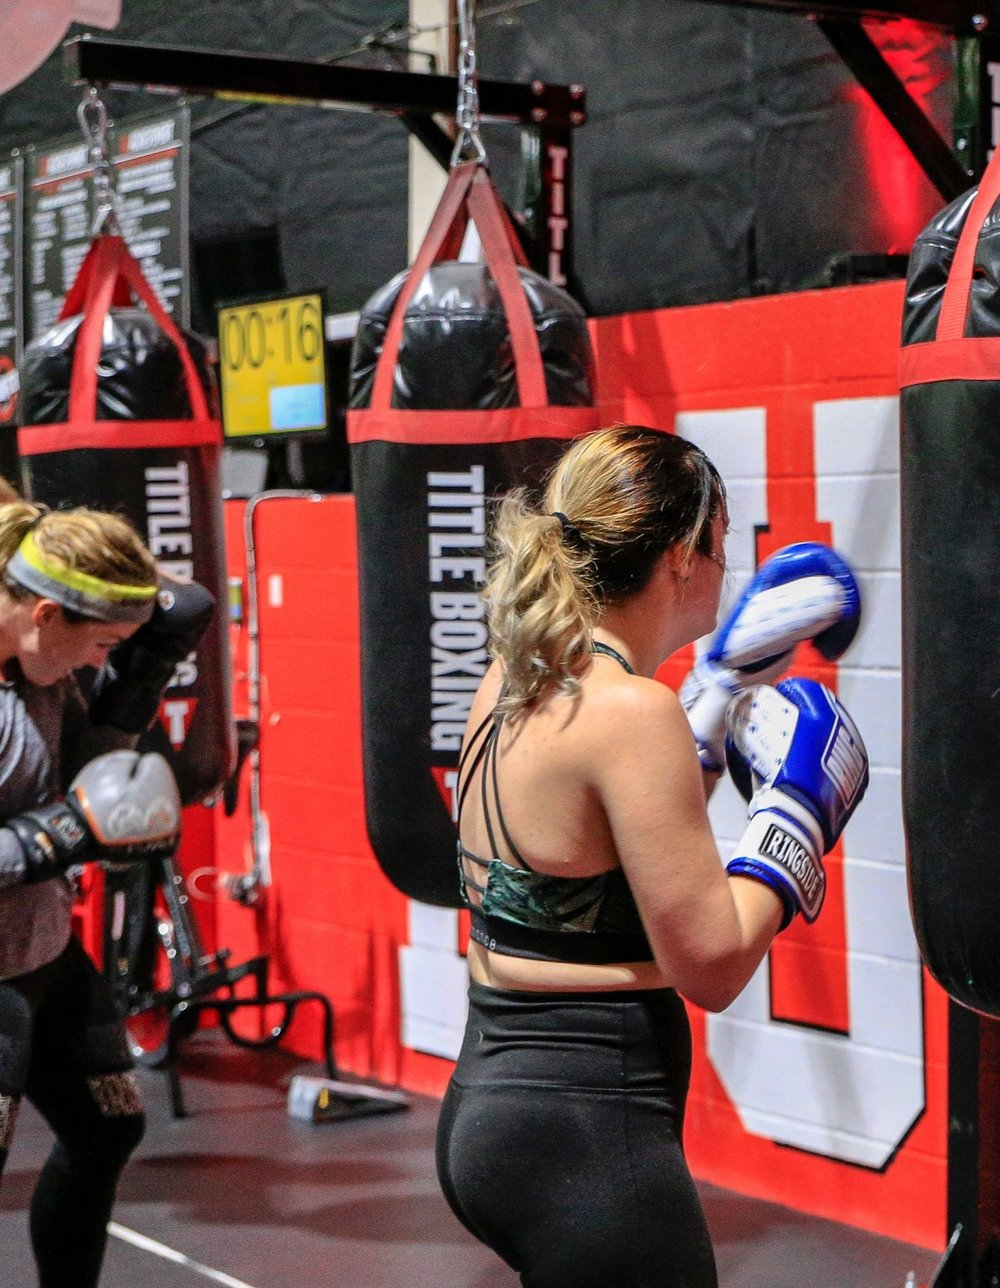 BOXING - High intensity combos on the heavy bag to keep your heart rate up and the sweat dripping.